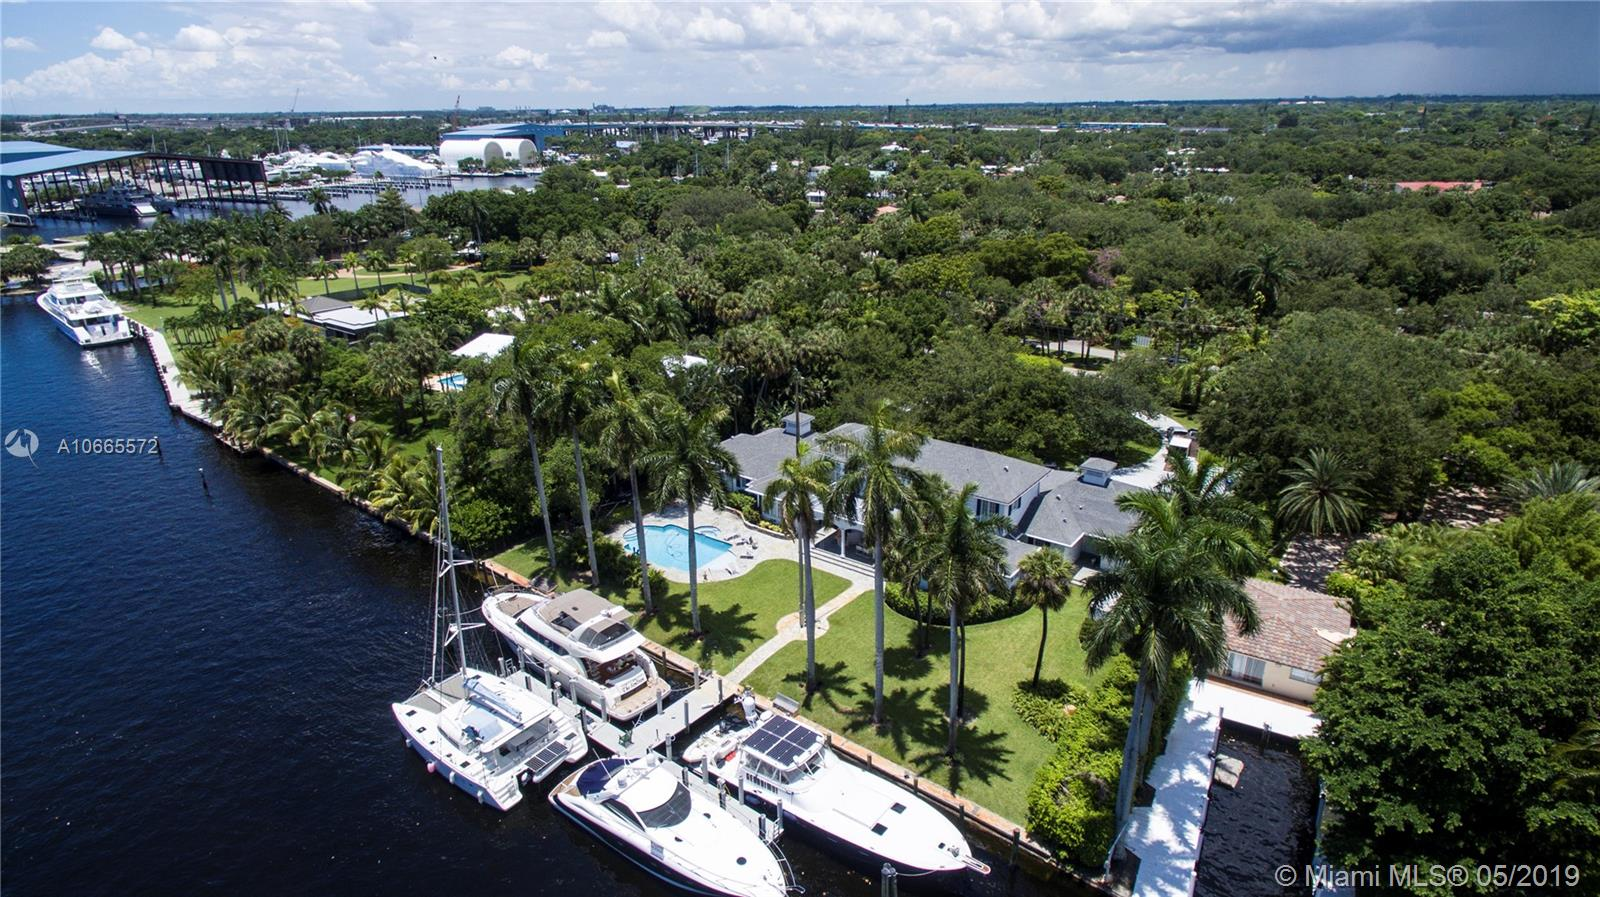 BREATHTAKING LUXURY RIVERFRONT HUGE ESTATE WITH PRIVATE MARINA HOSTING MULTIPLE BOATS AND DIRECT OCEAN ACCESS. BOATER'S DREAM !! Sophisticated interior that features 5 bedrooms, master suite, dressing rooms, all dressed with cherry wood and carpeted floors as well as a beautiful gourmet kitchen. Great location (minutes to downtown, airport and beaches). The private docks can host up to 4 Yachts and be rented separately for up to $4,000/month. 300K PRICE REDUCTION !!